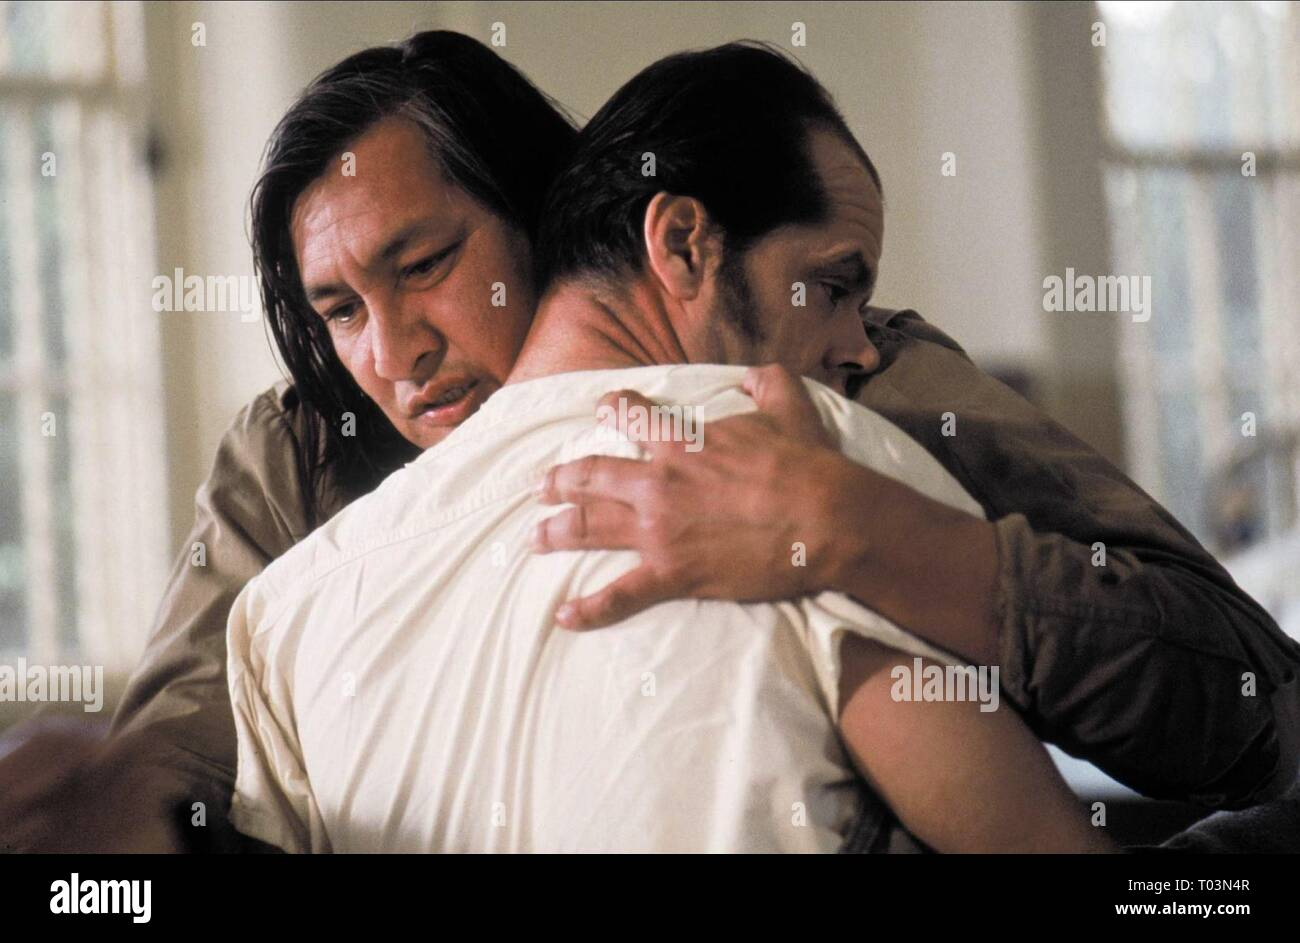 WILL SAMPSON, JACK NICHOLSON, ONE FLEW OVER THE CUCKOO'S NEST, 1975 - Stock Image